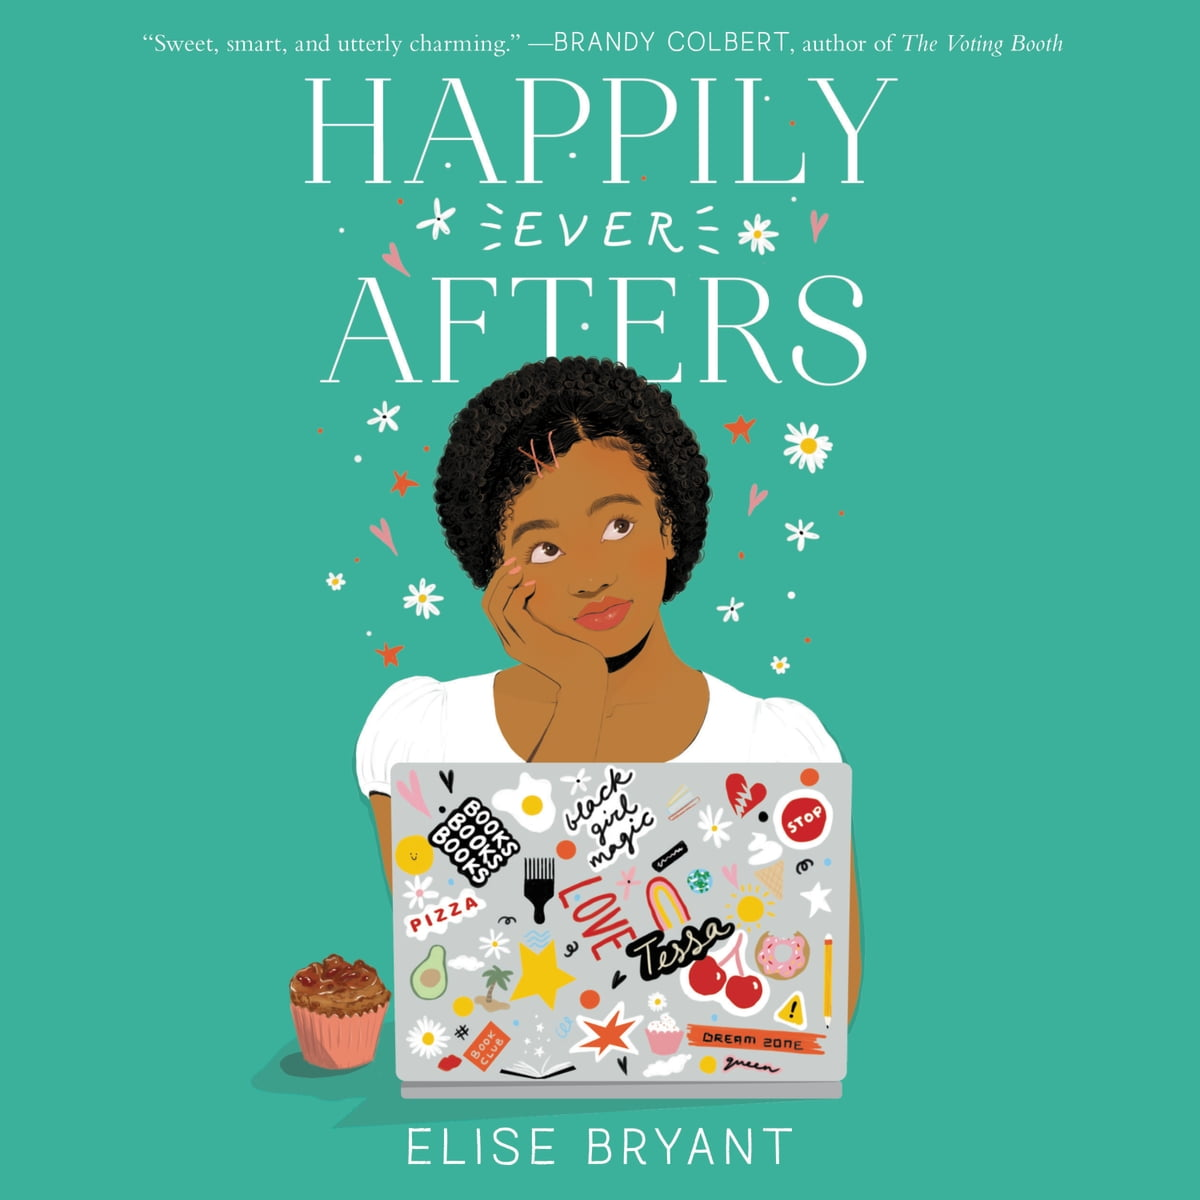 Happily Ever Afters Audiobook by Elise Bryant Cover Art